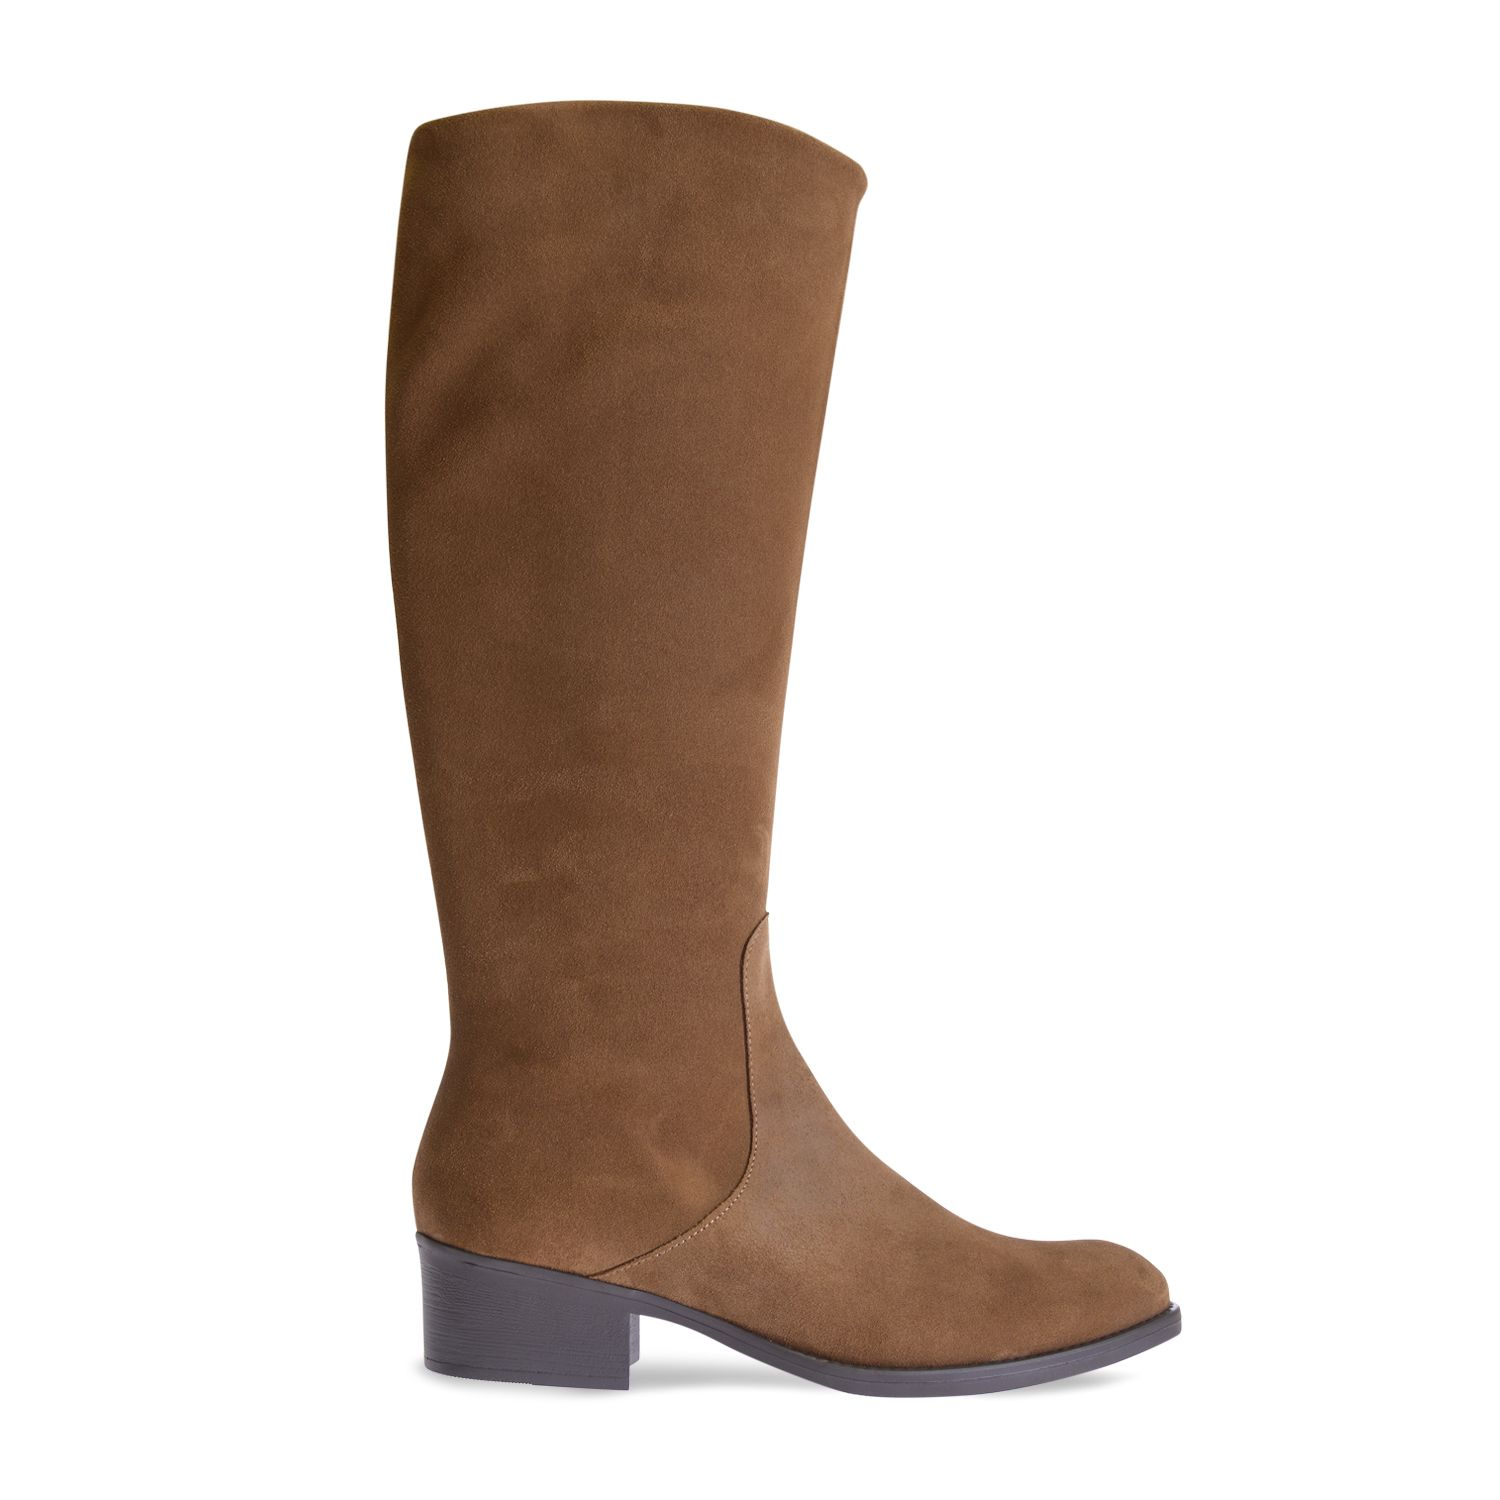 High leg boot in suede - TIROL-SY